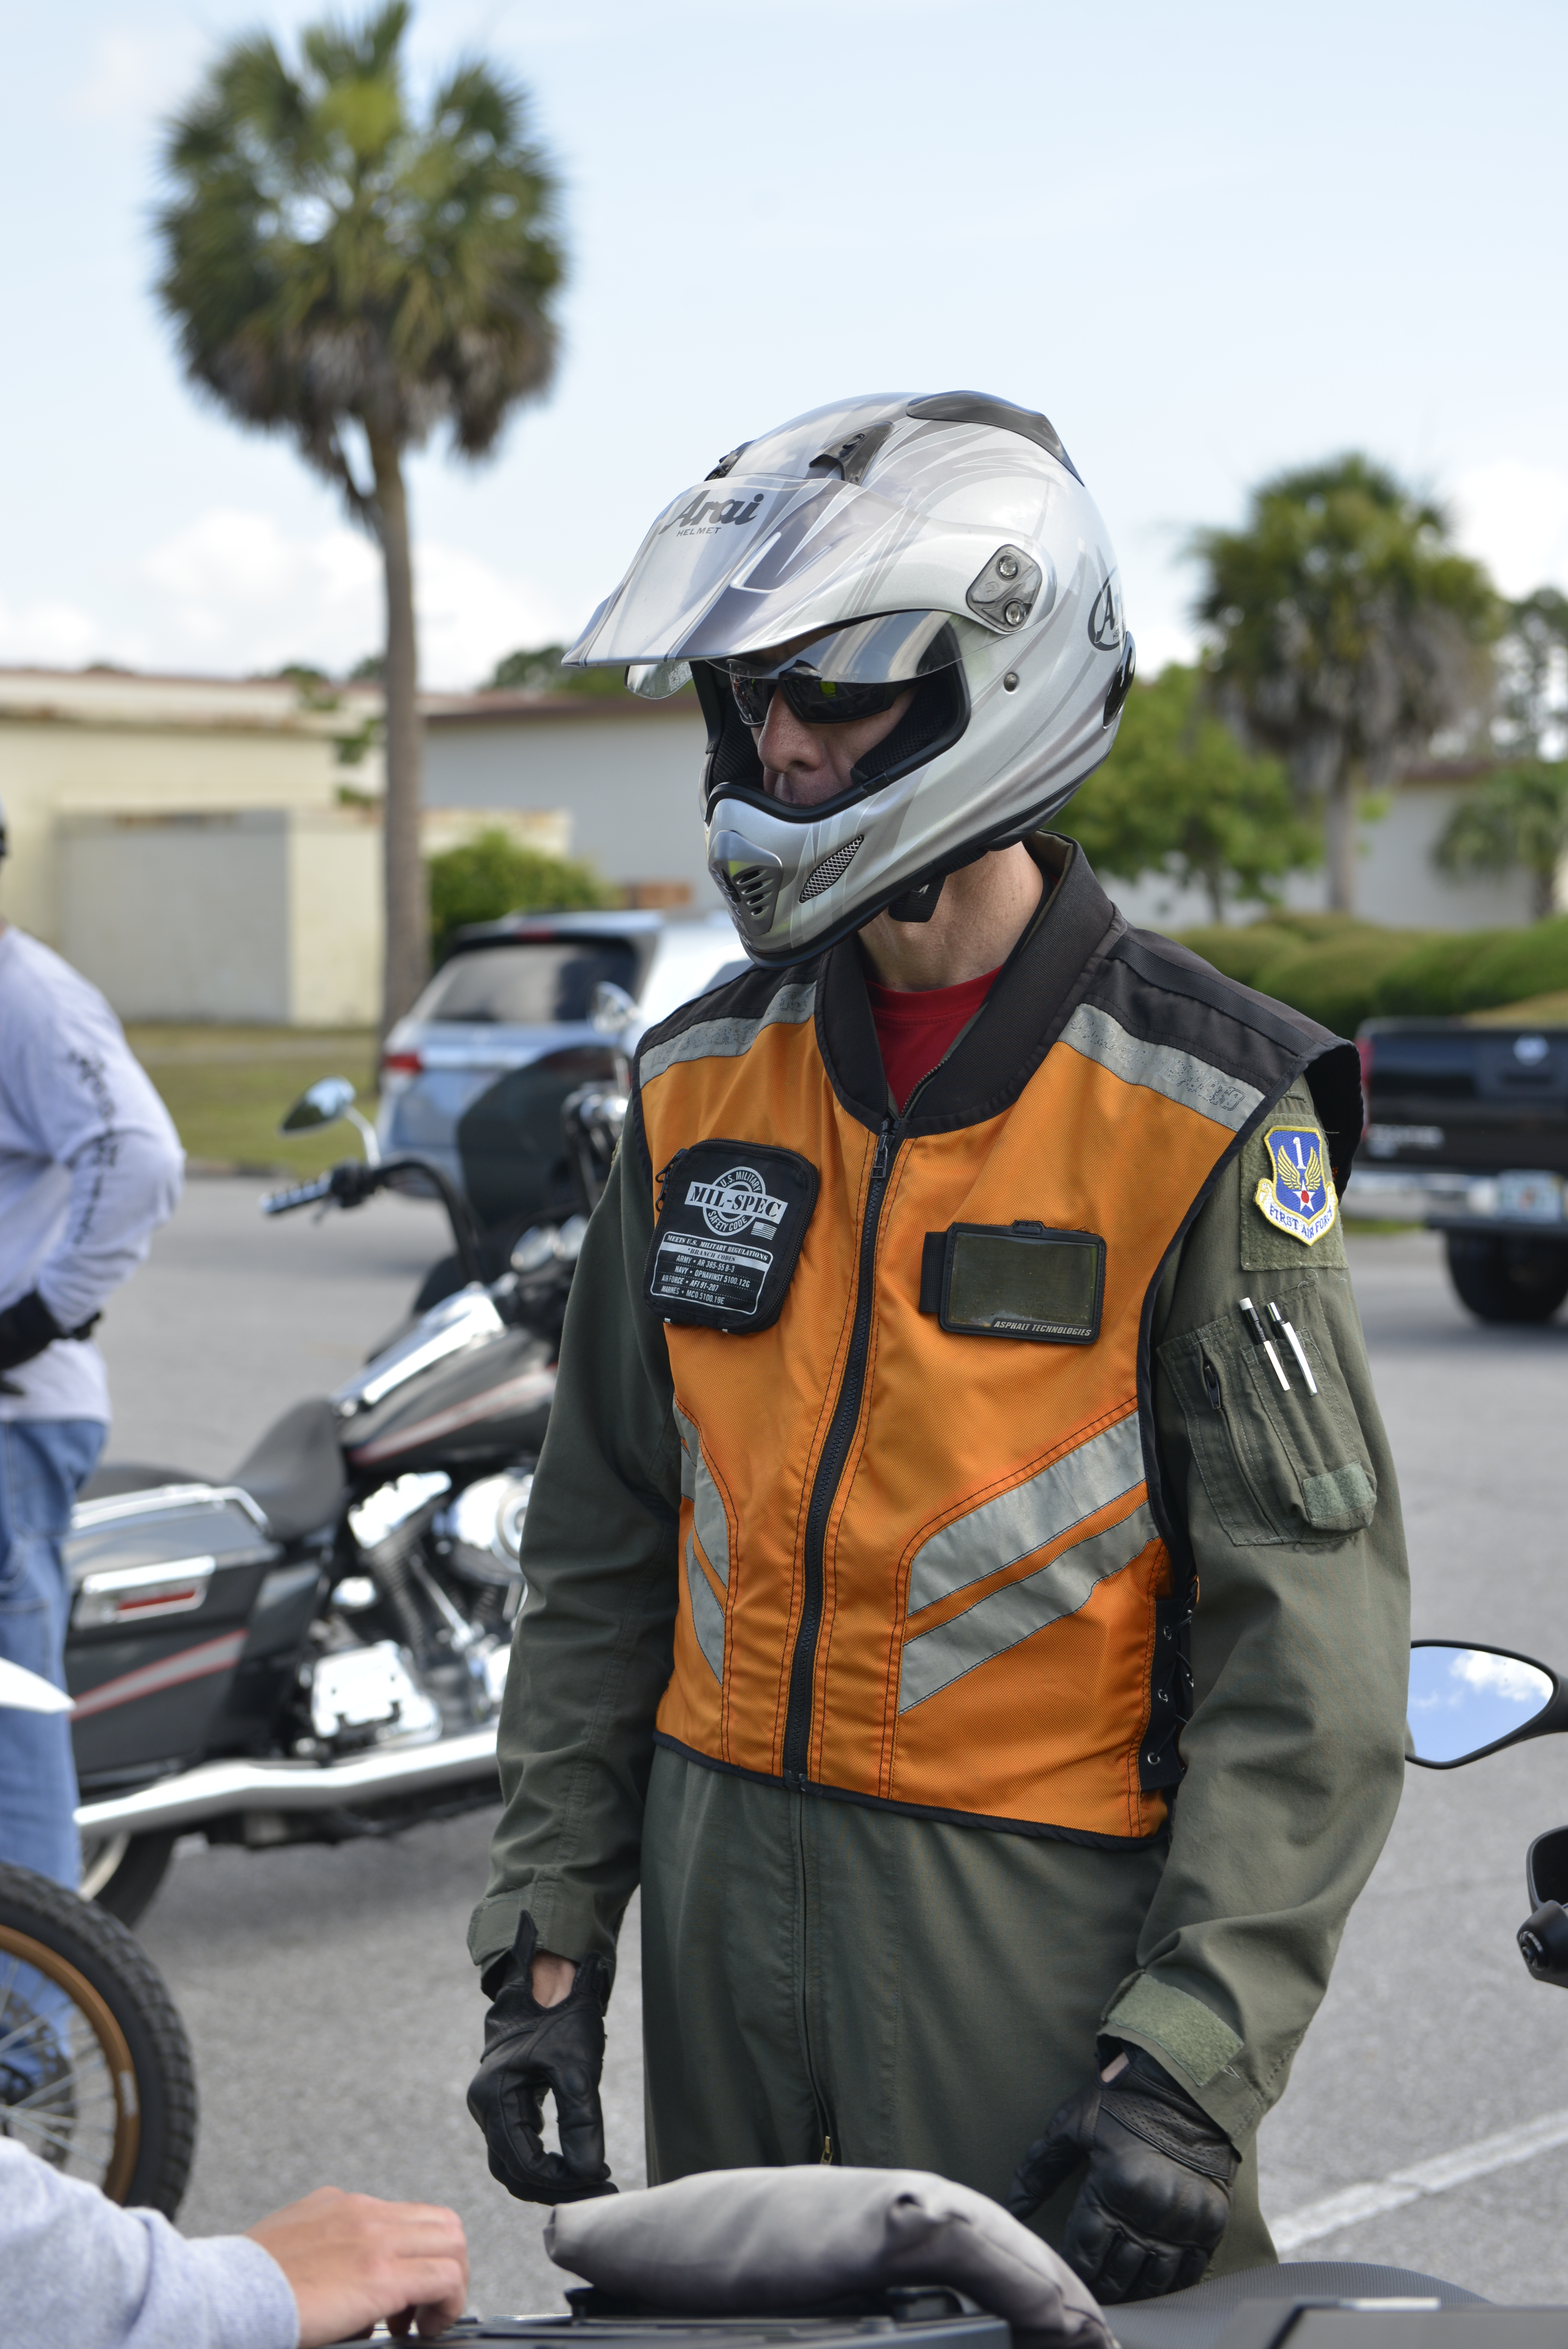 Motorcycle Safety Training Reinforces Risk Management